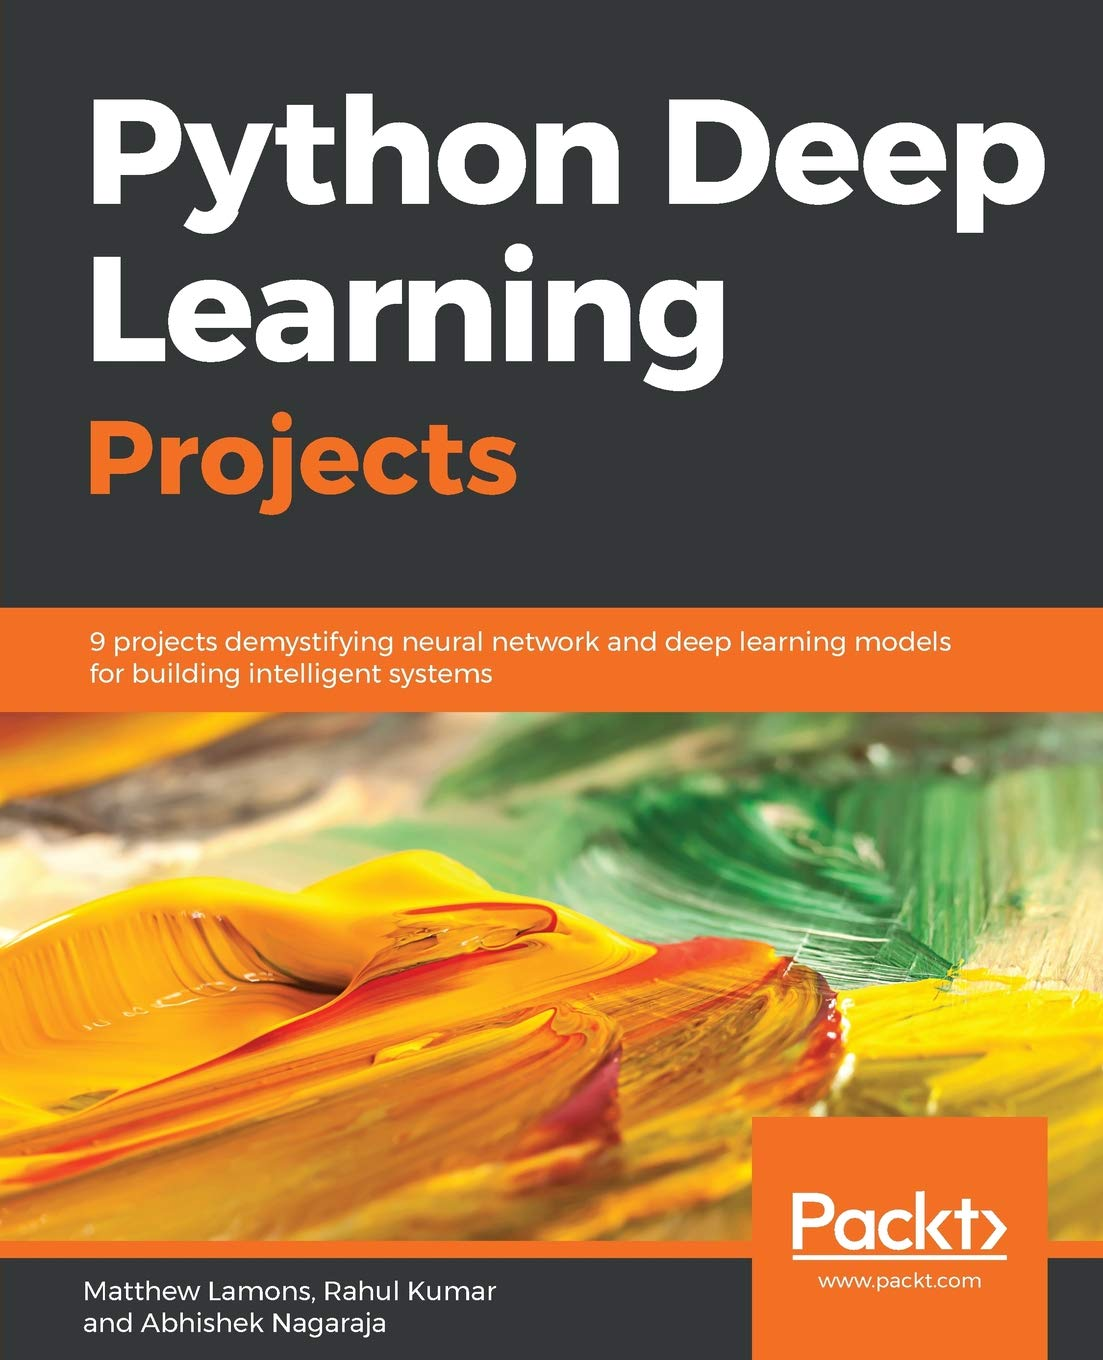 Python Deep Learning Projects: 9 projects demystifying